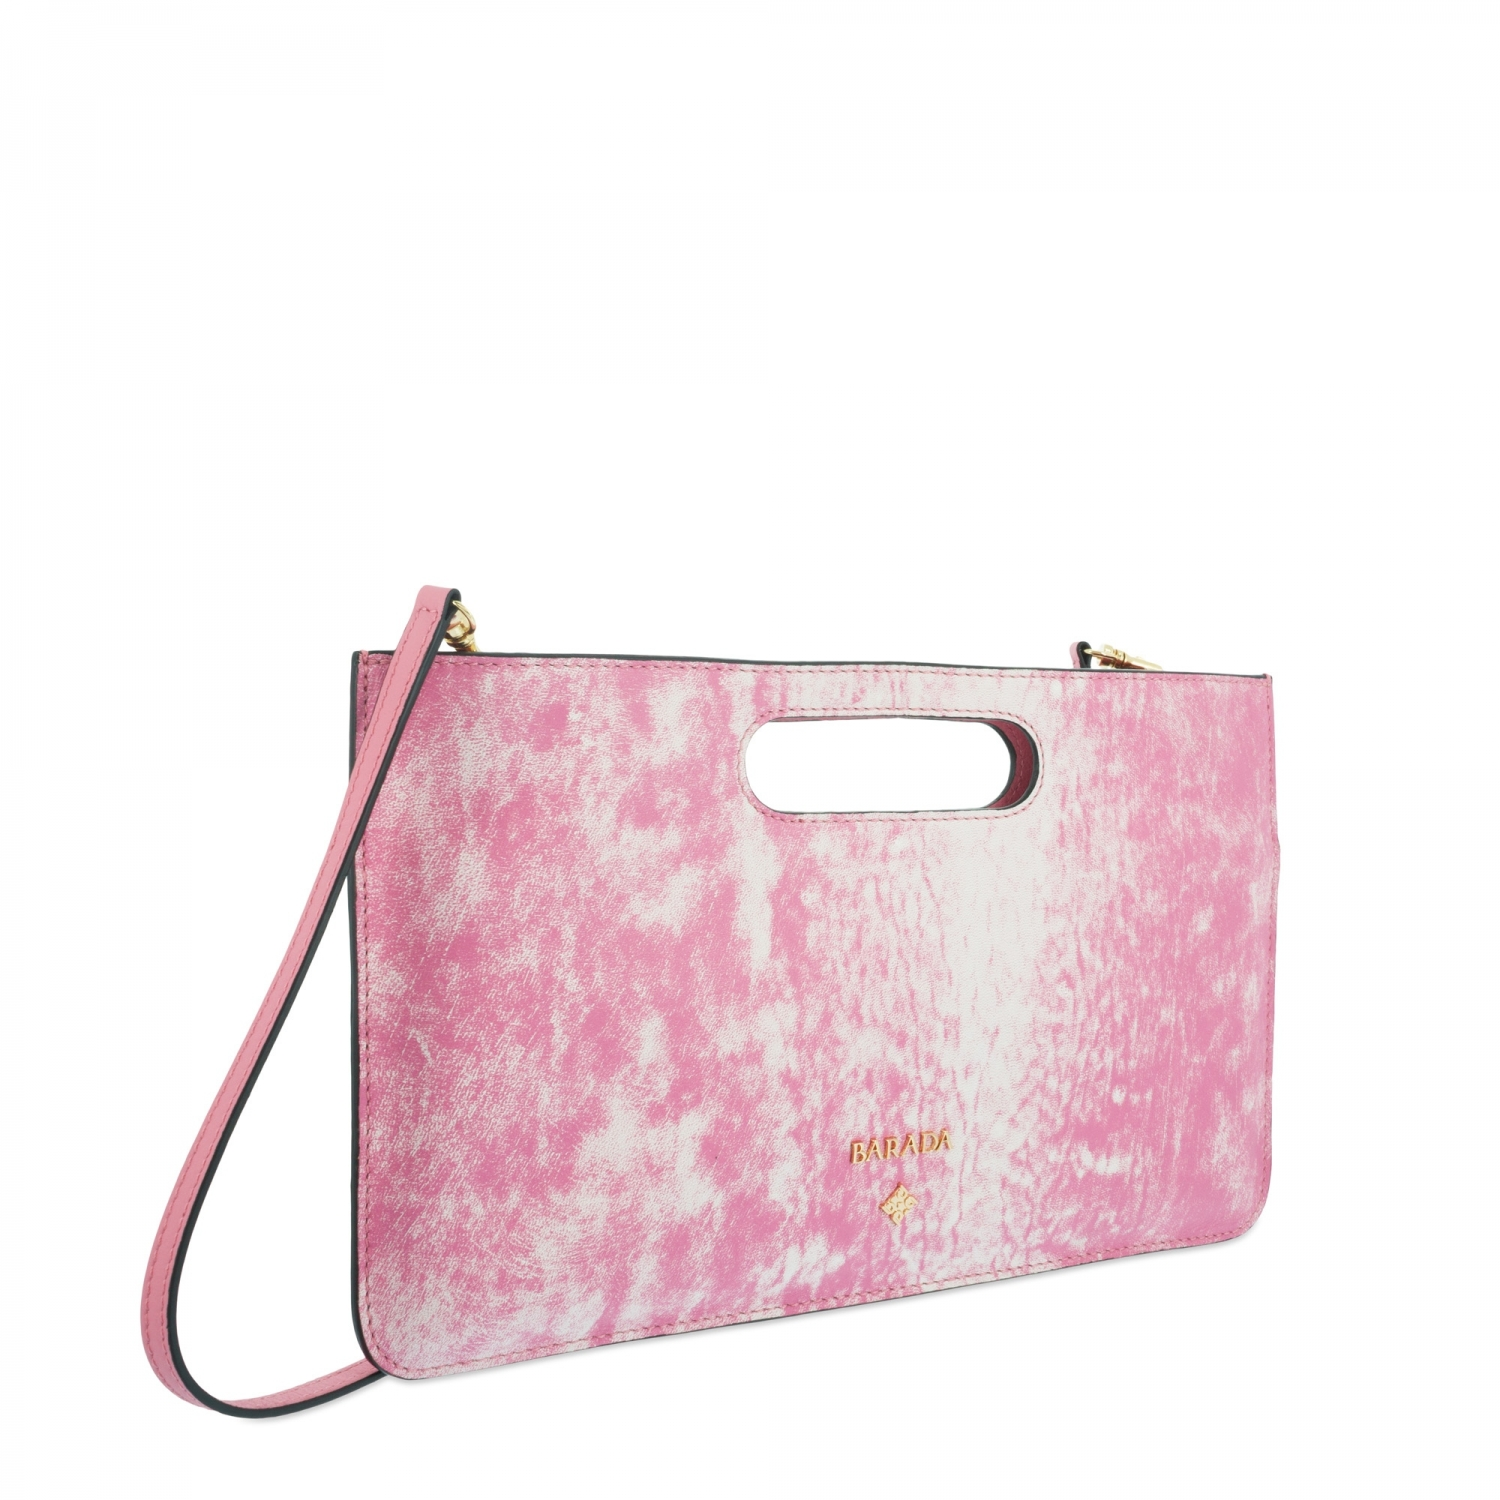 Handbag Style 347 In Colibri Leather Lambskin And Pink Colour Barada